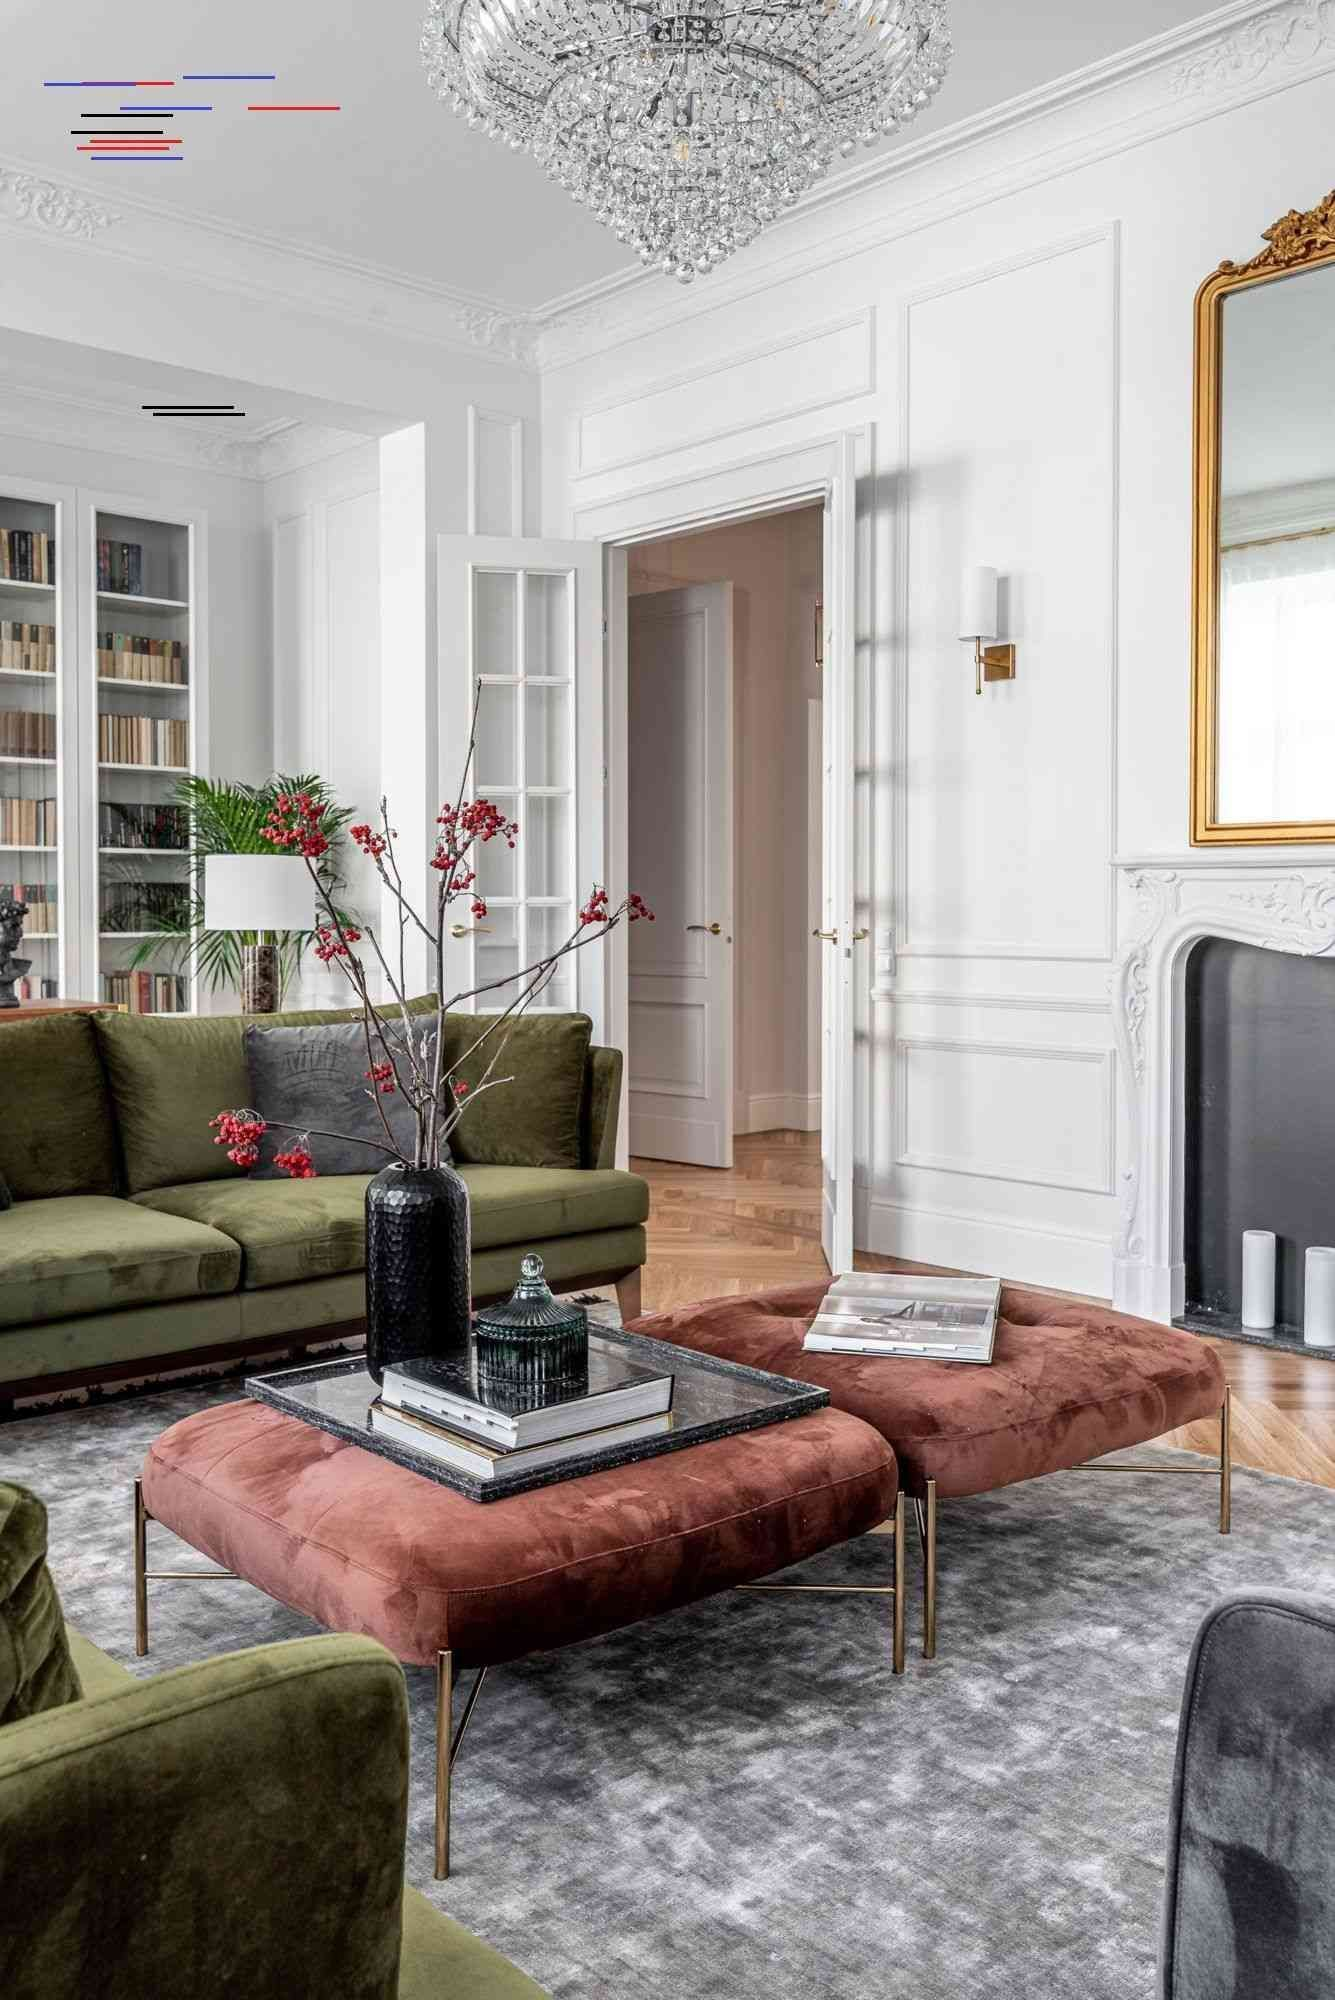 75 Cozy Apartment Living Room Decorating Ideas Small Apartments Have Their Upsid Apartme In 2020 Living Room Decor Apartment Living Room Color Apartment Living Room